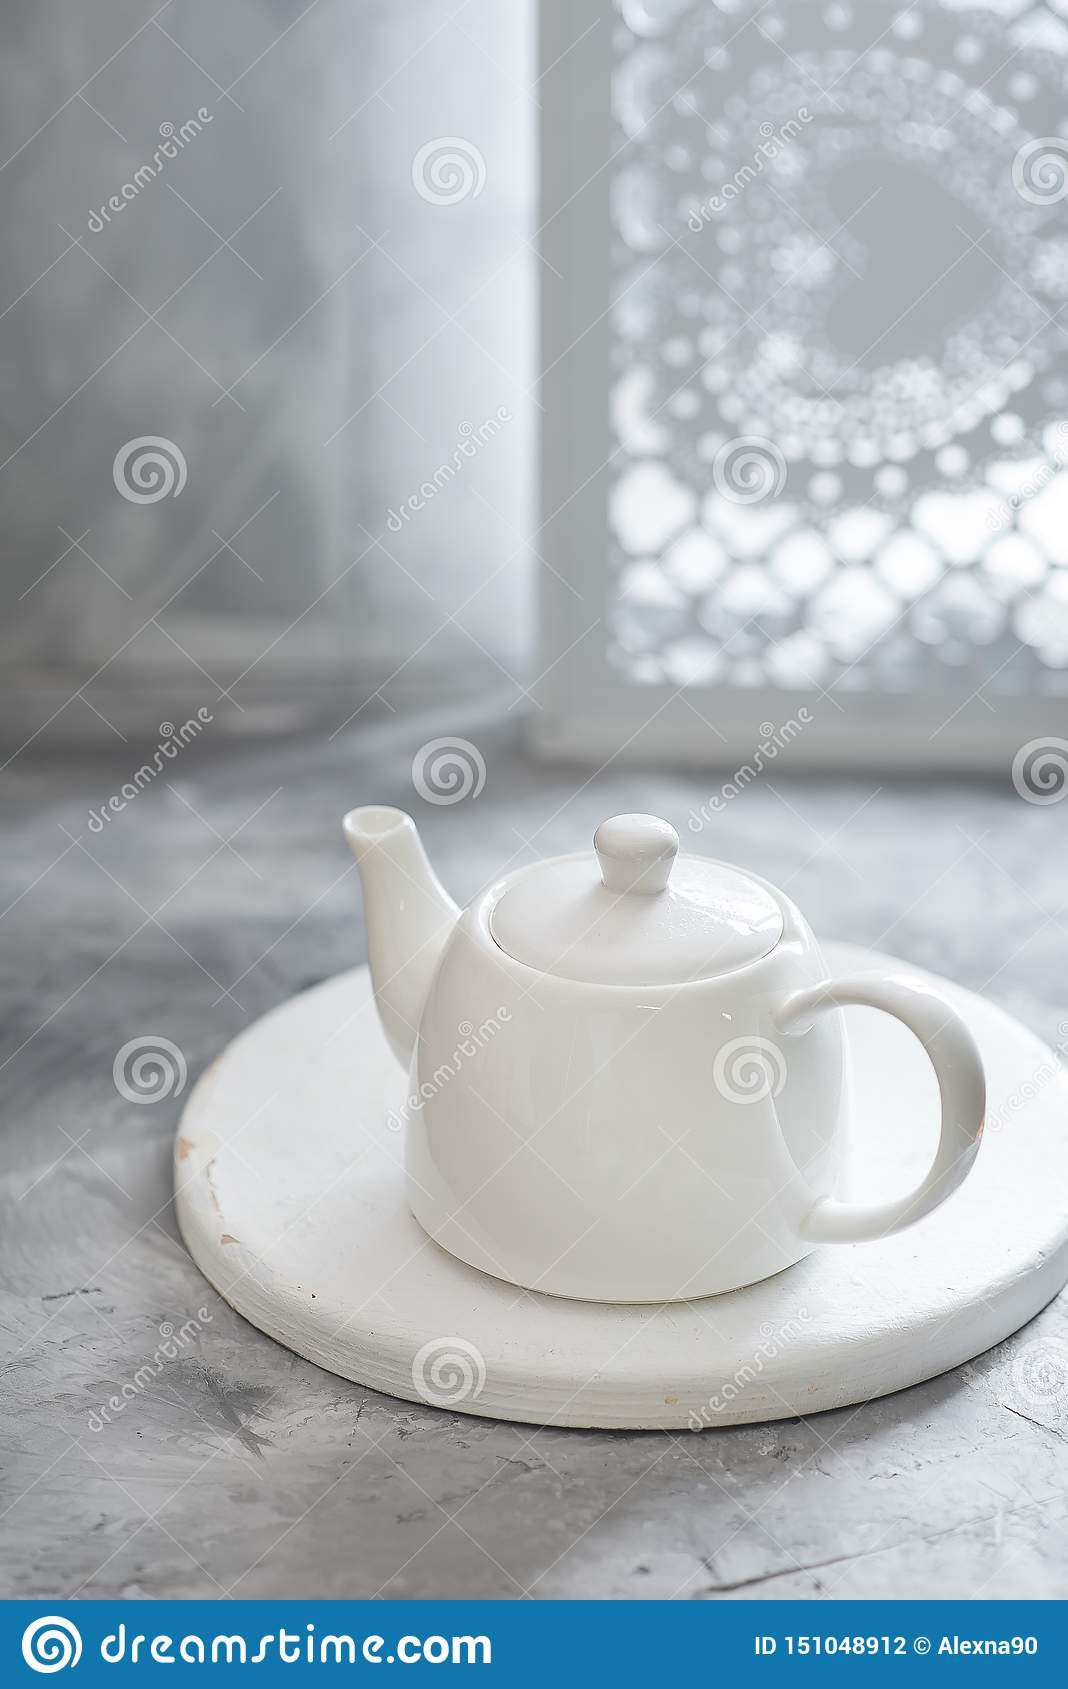 White clean porcelain teapot are on gray background